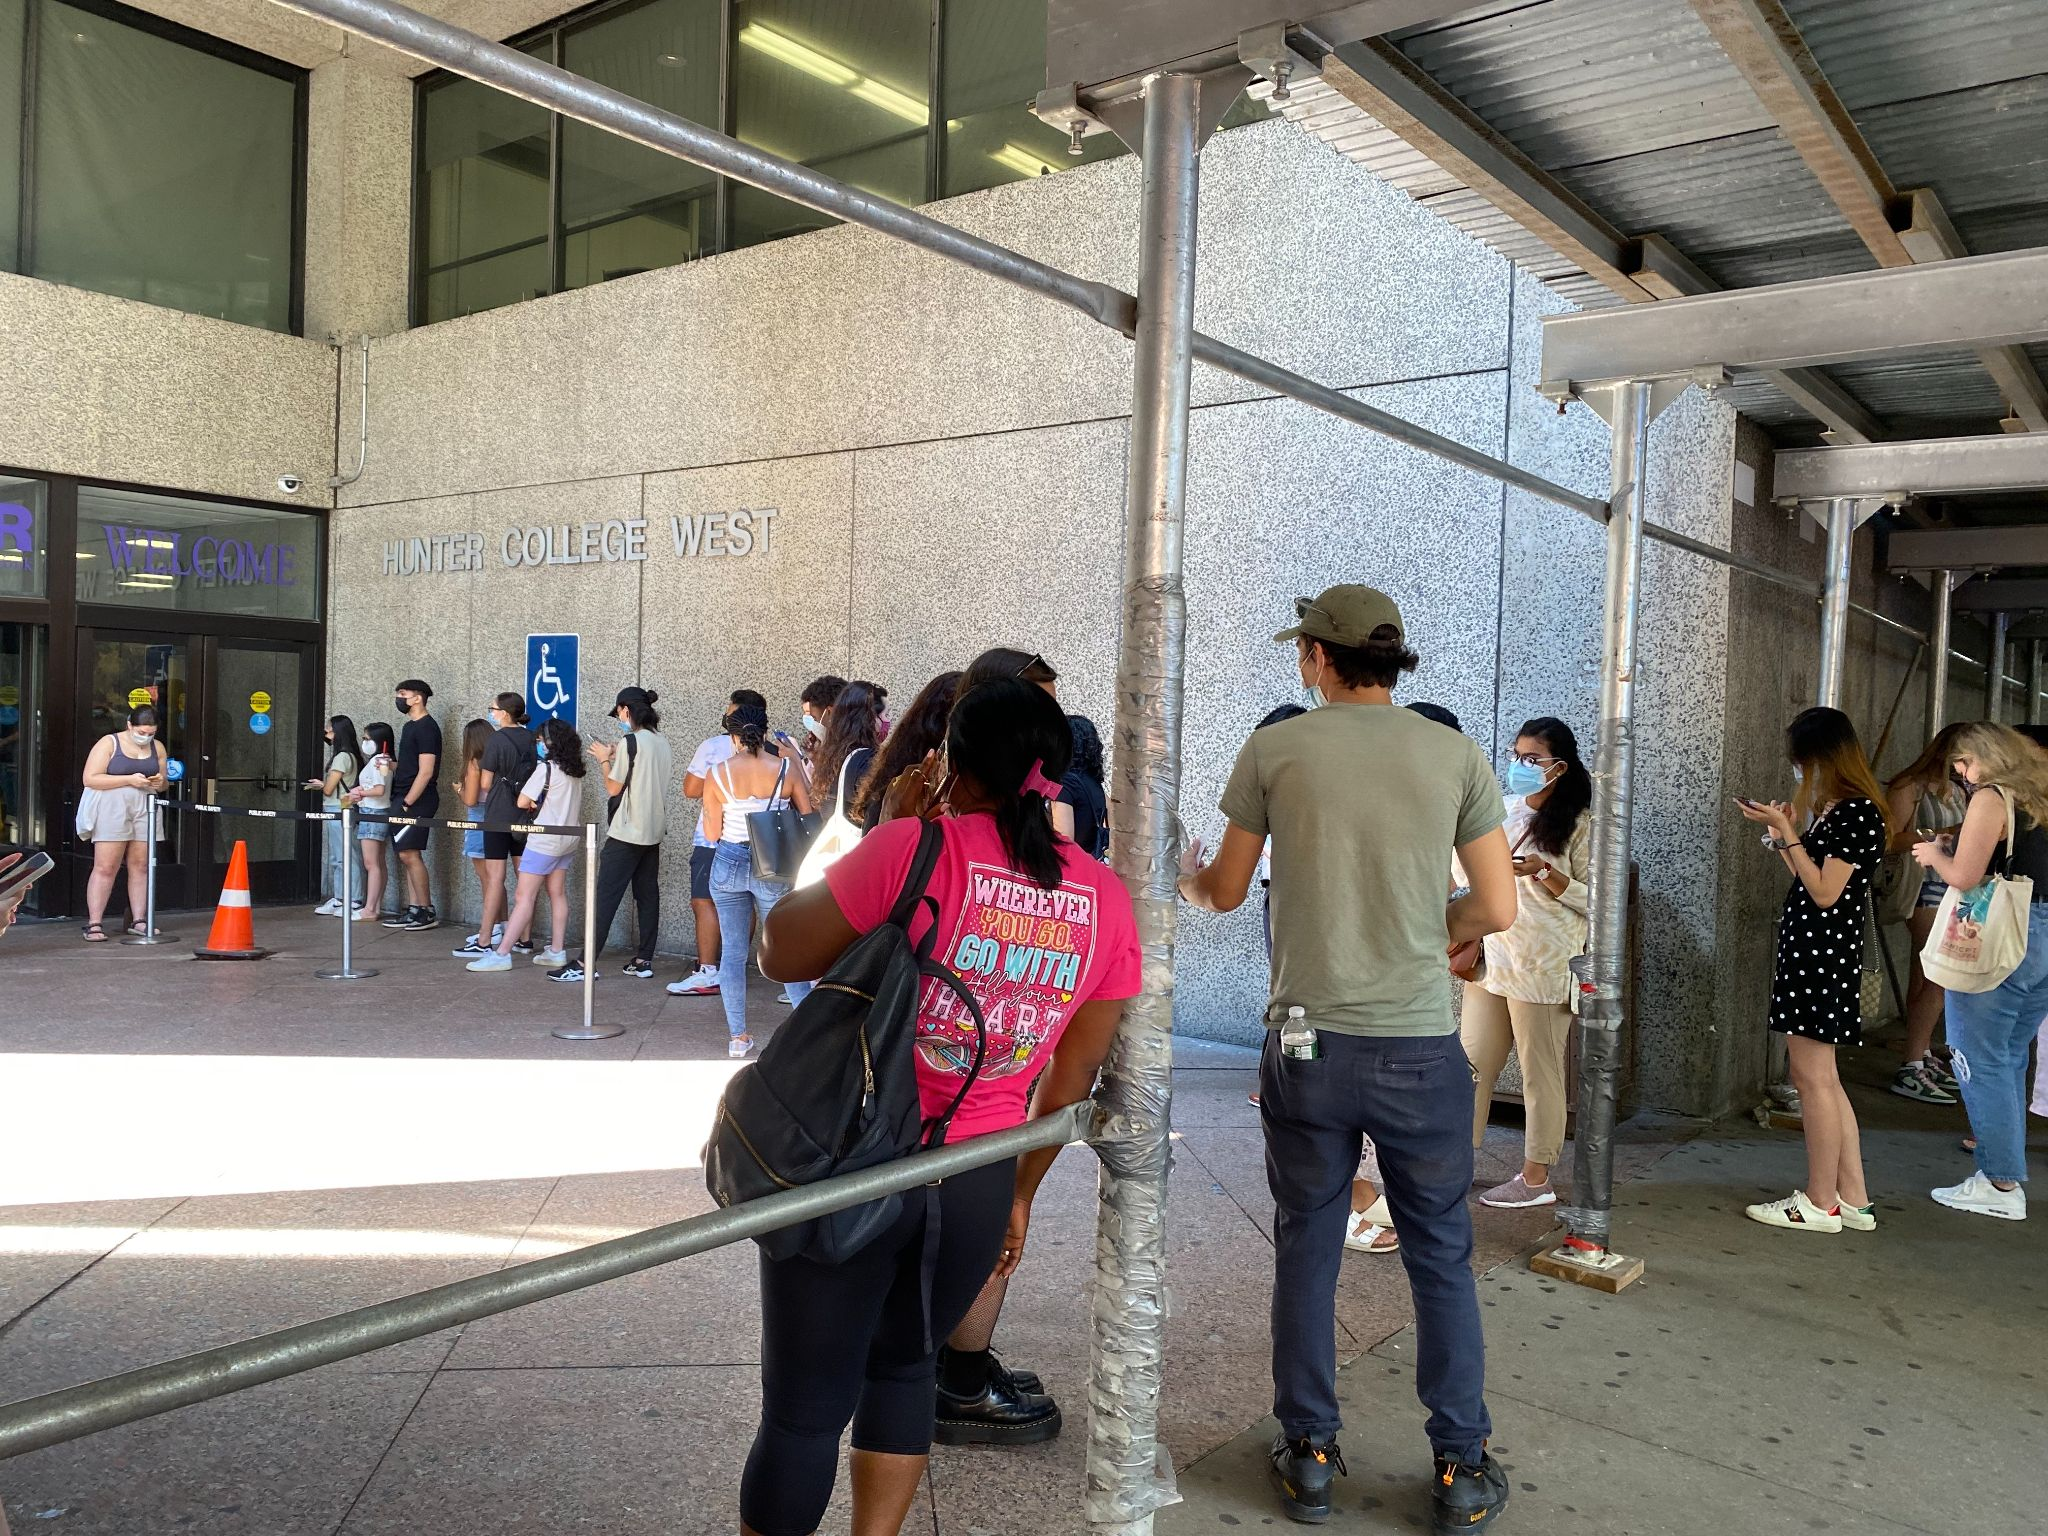 The image shows unvaccinated students waiting on a line outside Hunter's West Building.